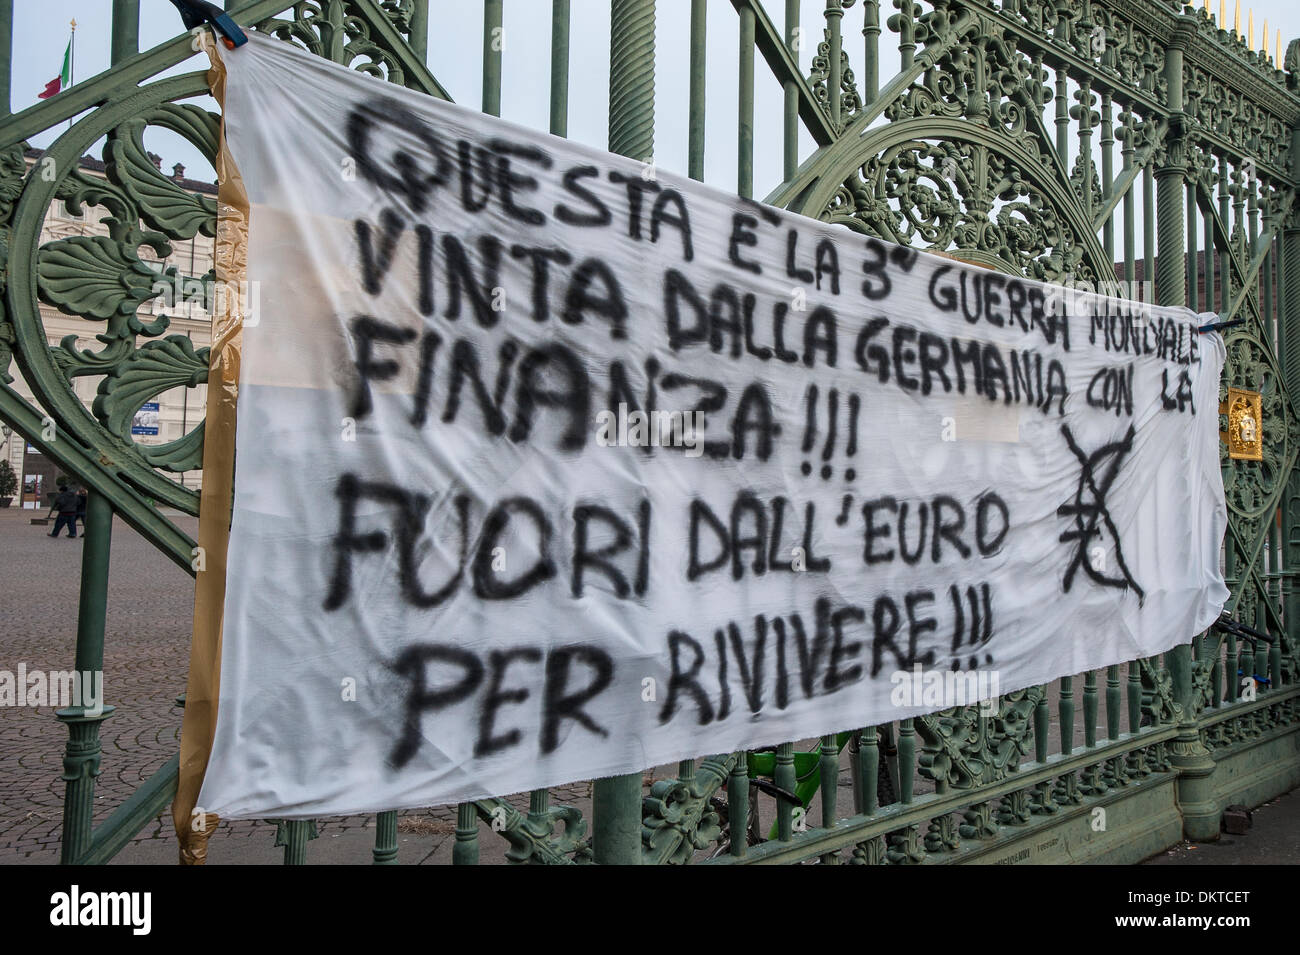 Italy Turin Piedmont 9th December 2013 demostration of ' Movimento dei forconi ' ( Pitchforks movement ) as interested the entire Italian peninsula, The most difficult in Turin. Piazza Castello the writing in the bed sheet says :'Is the Third world war, which was won by Germany with finance!!! Out of the Euro to revive ' Credit:  Realy Easy Star/Alamy Live News - Stock Image